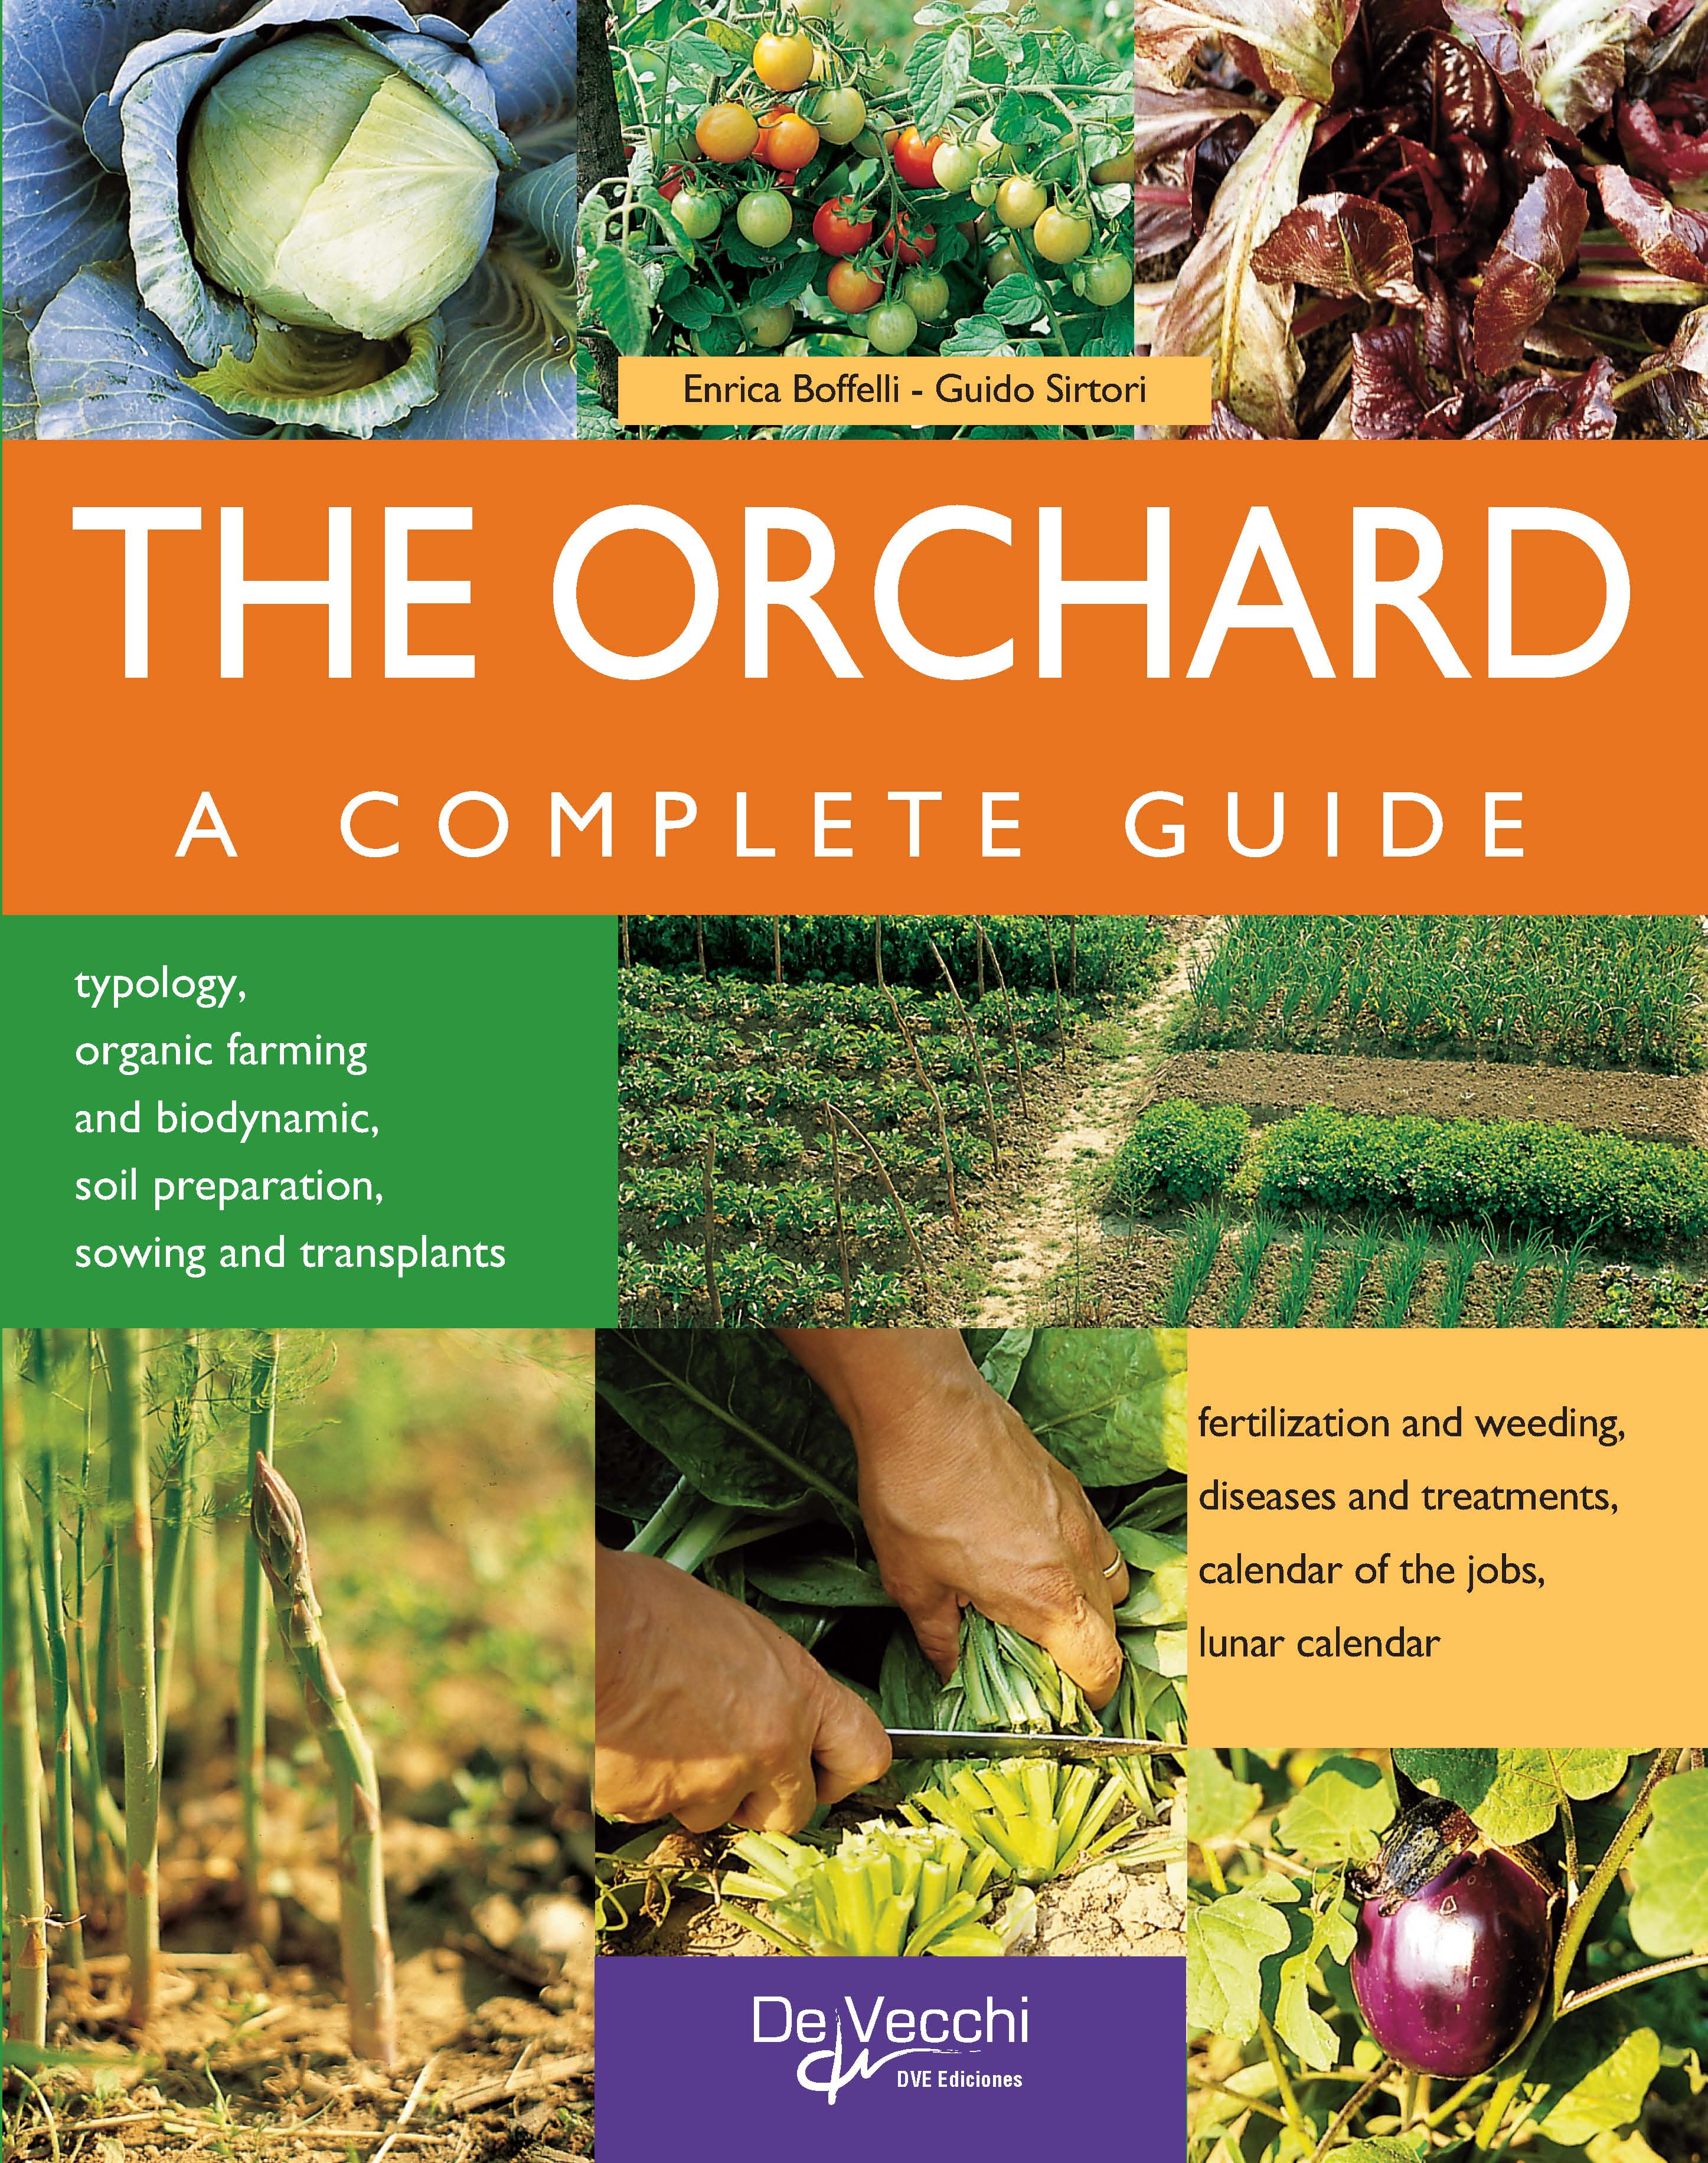 THE ORCHARD: A COMPLETE GUIDE